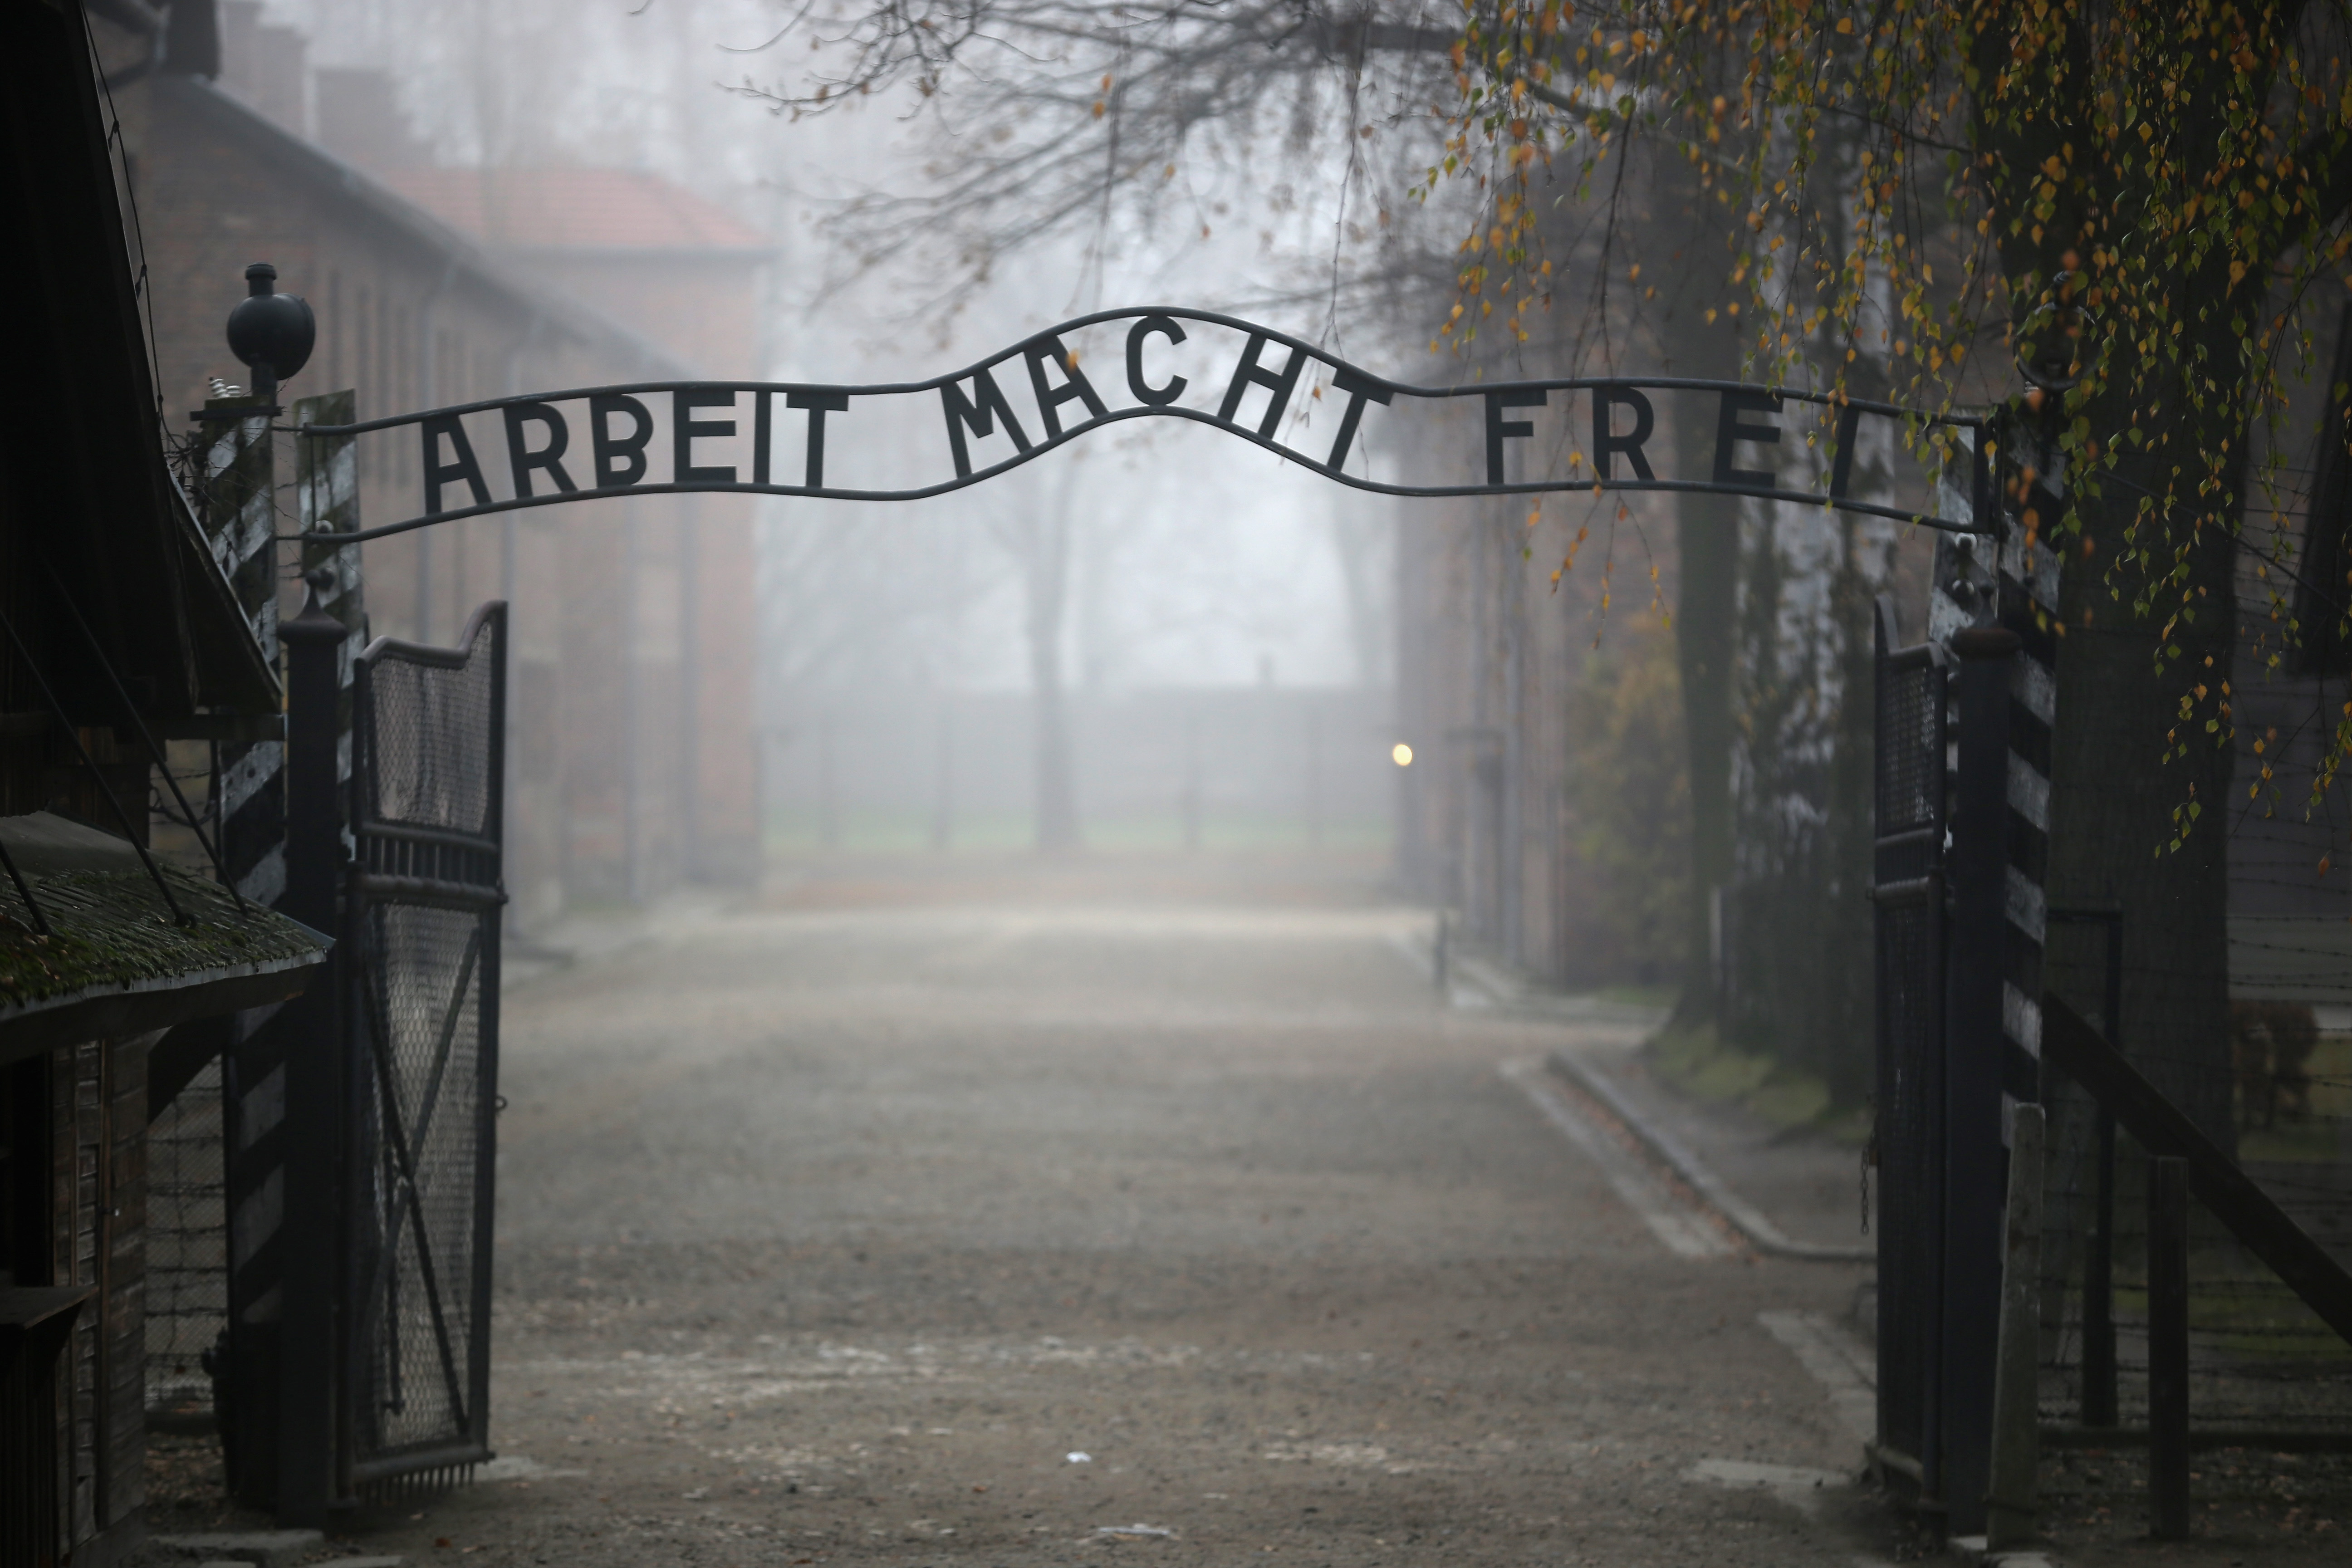 The infamous German inscription that reads 'Work Makes Free' at the main gate of the Auschwitz extermination camp on November 15, 2014 in Oswiecim, Poland.